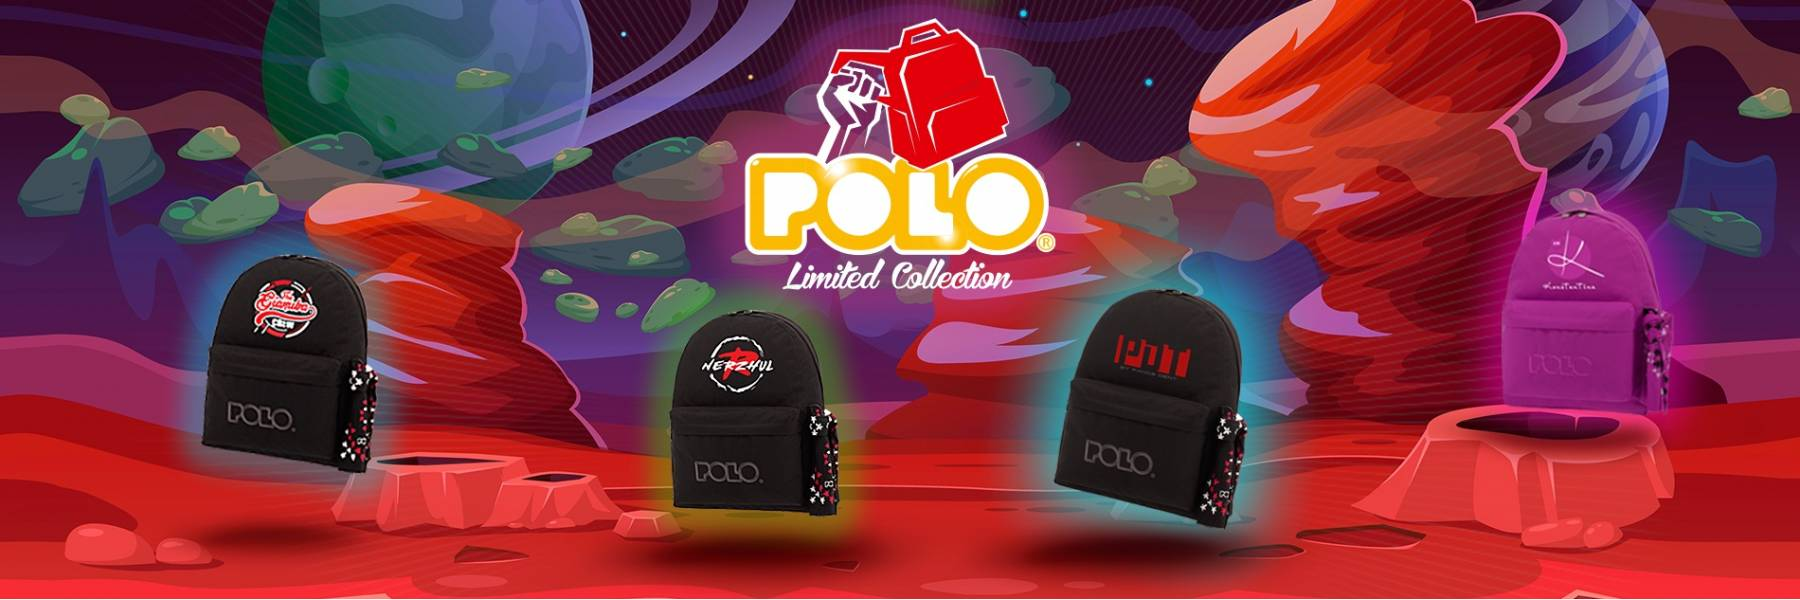 Polo Limited  Collection